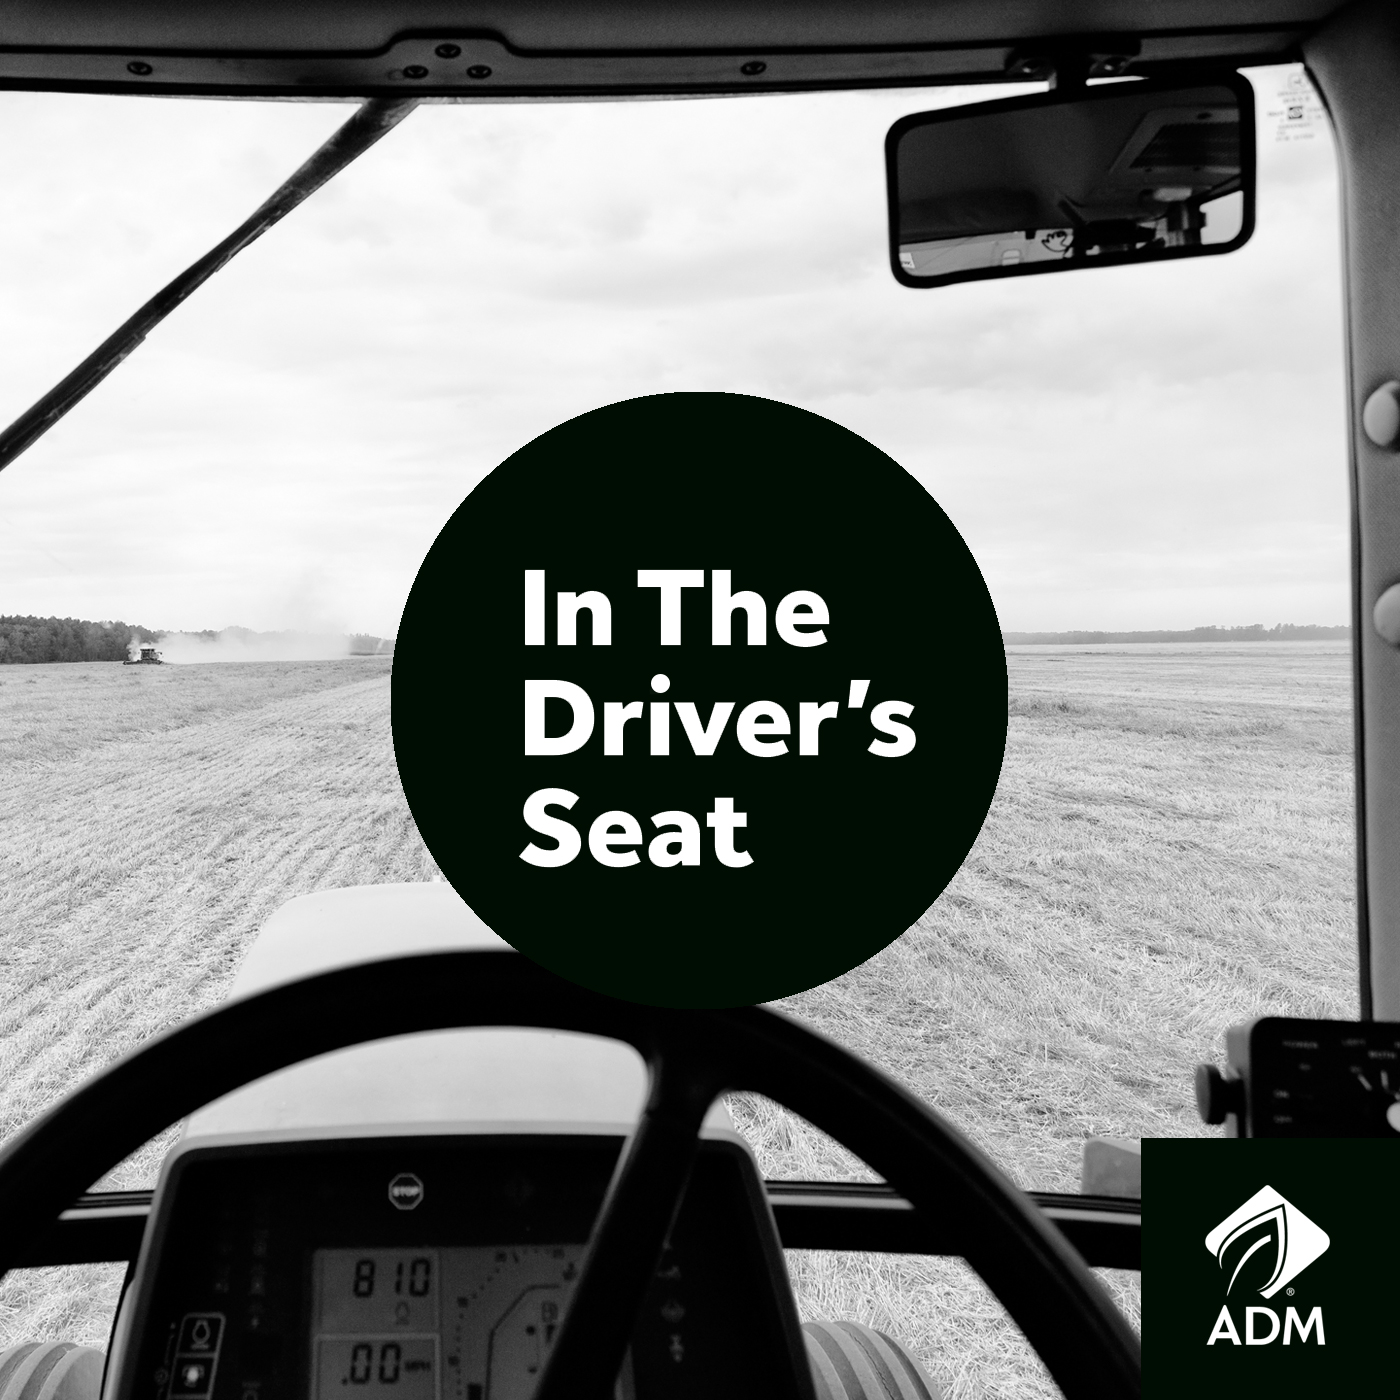 ADM Podcast: In the Driver's Seat